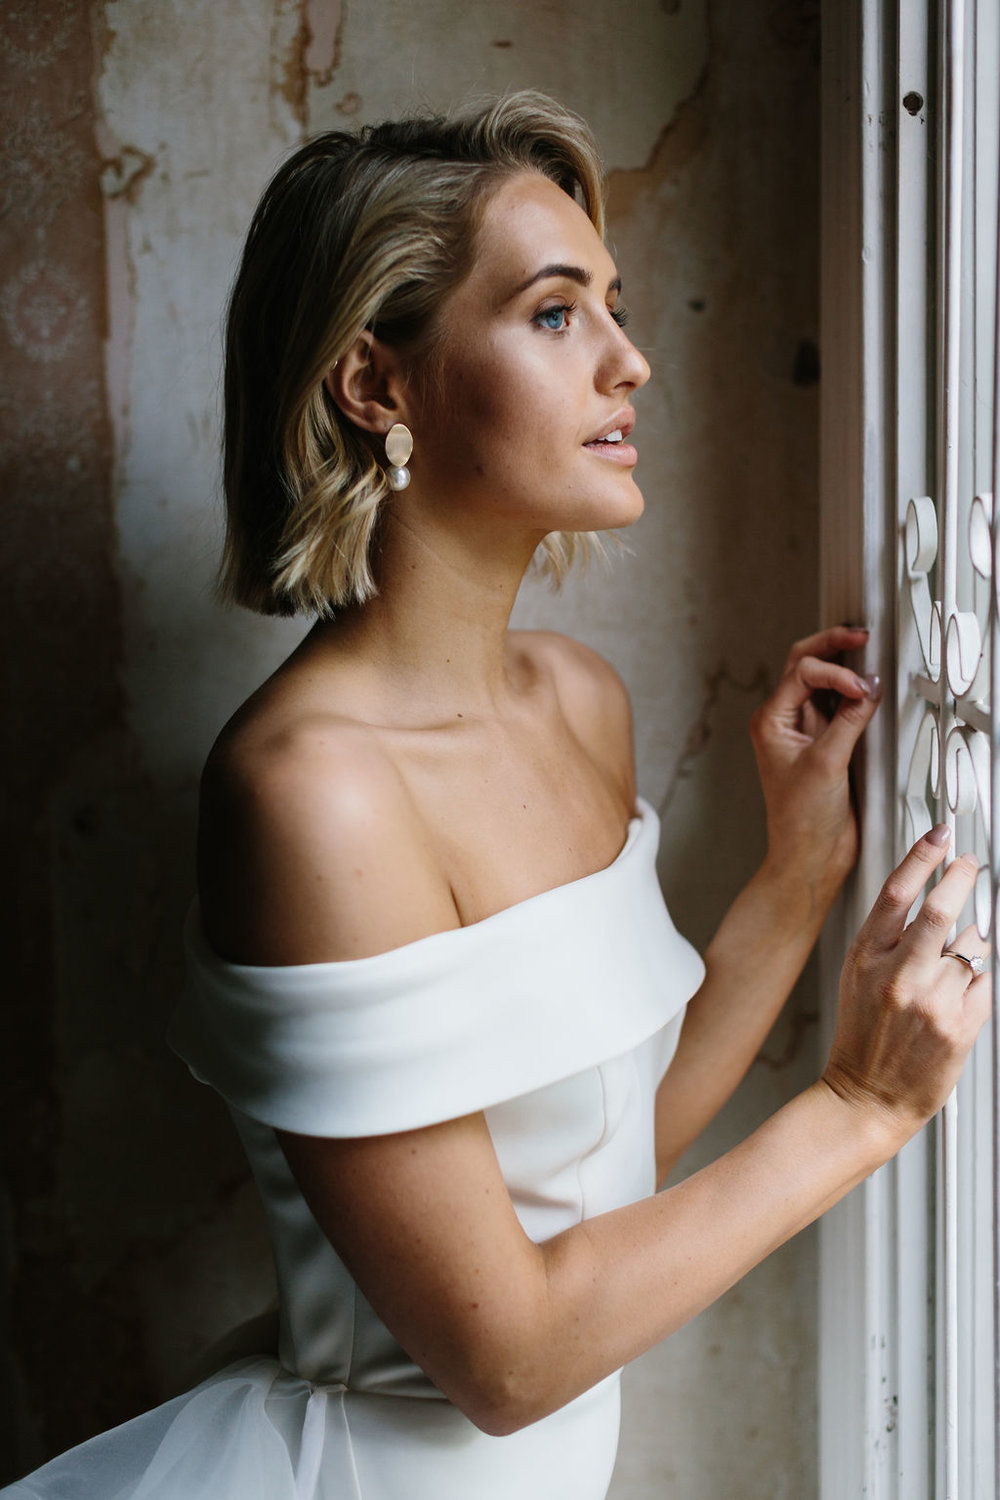 Perfect Bridal highlight makeup with bronze lowlight and pearl gold wedding earrings for Amelie George Campaign in vintage ballroom looking out window wearing offshoulder wedding dress